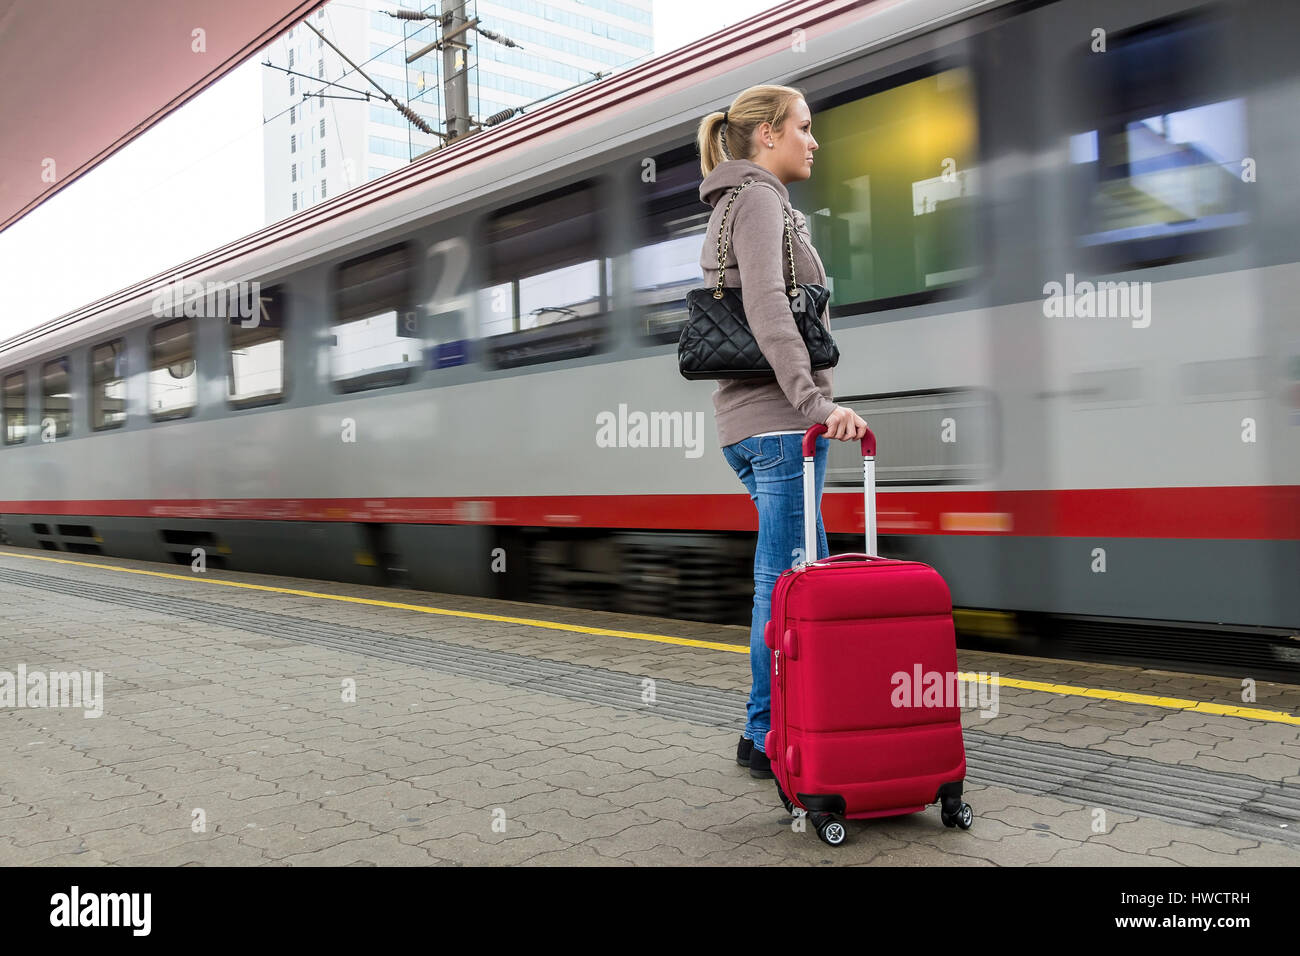 A young woman waits for a train in a railway station. Train journey in the vacation, Eine junge Frau wartet auf Stock Photo